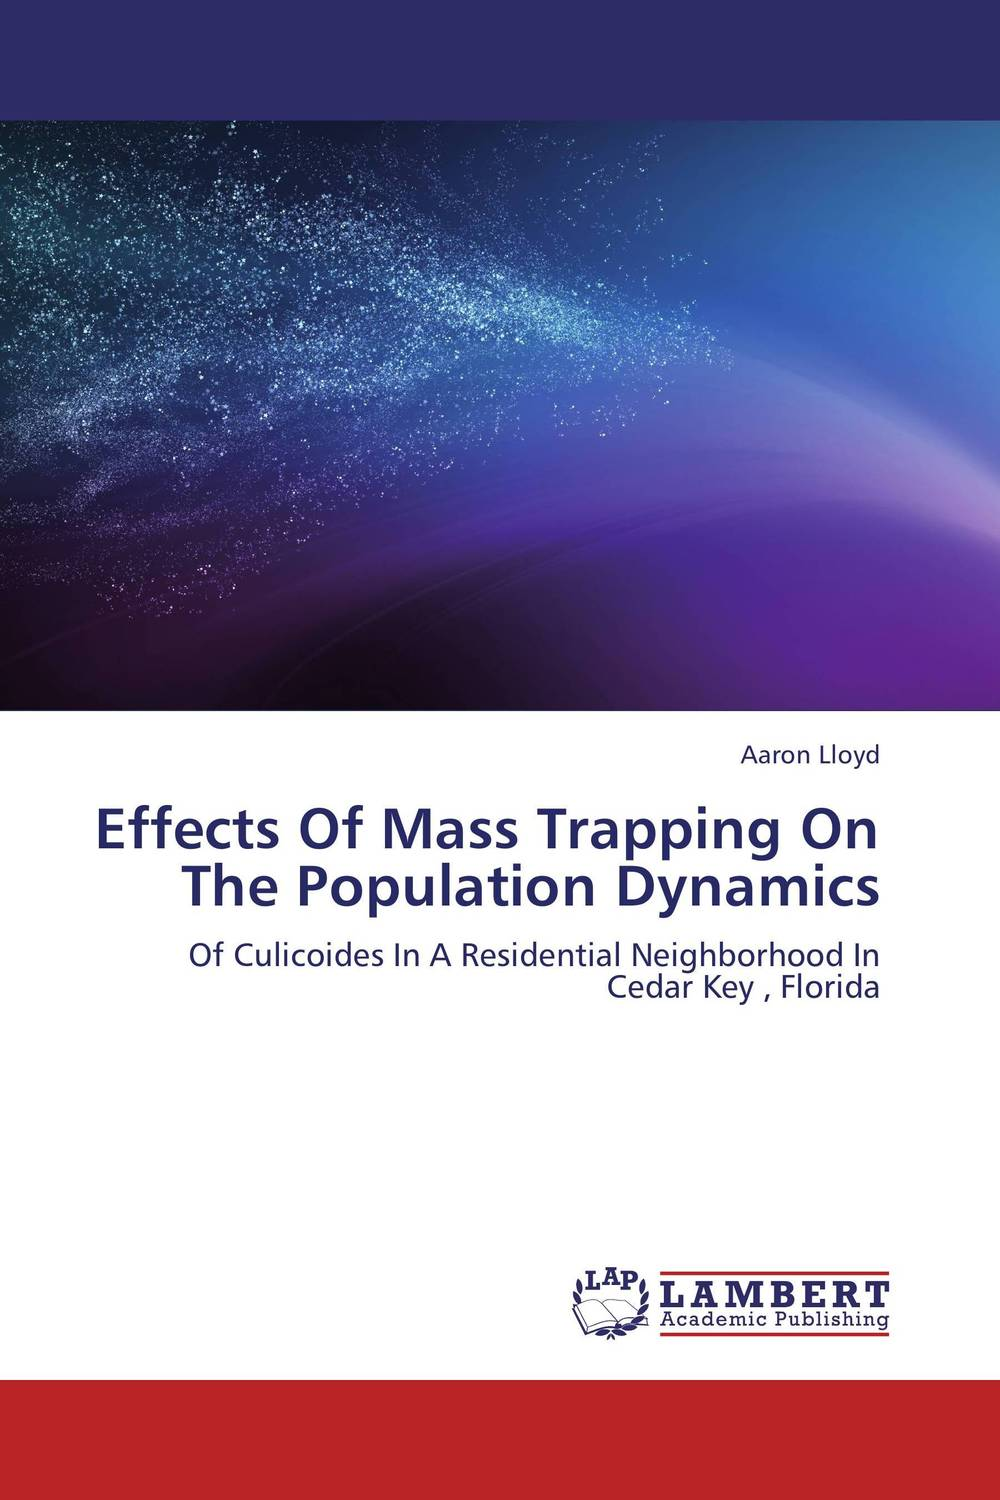 Effects Of Mass Trapping On The Population Dynamics